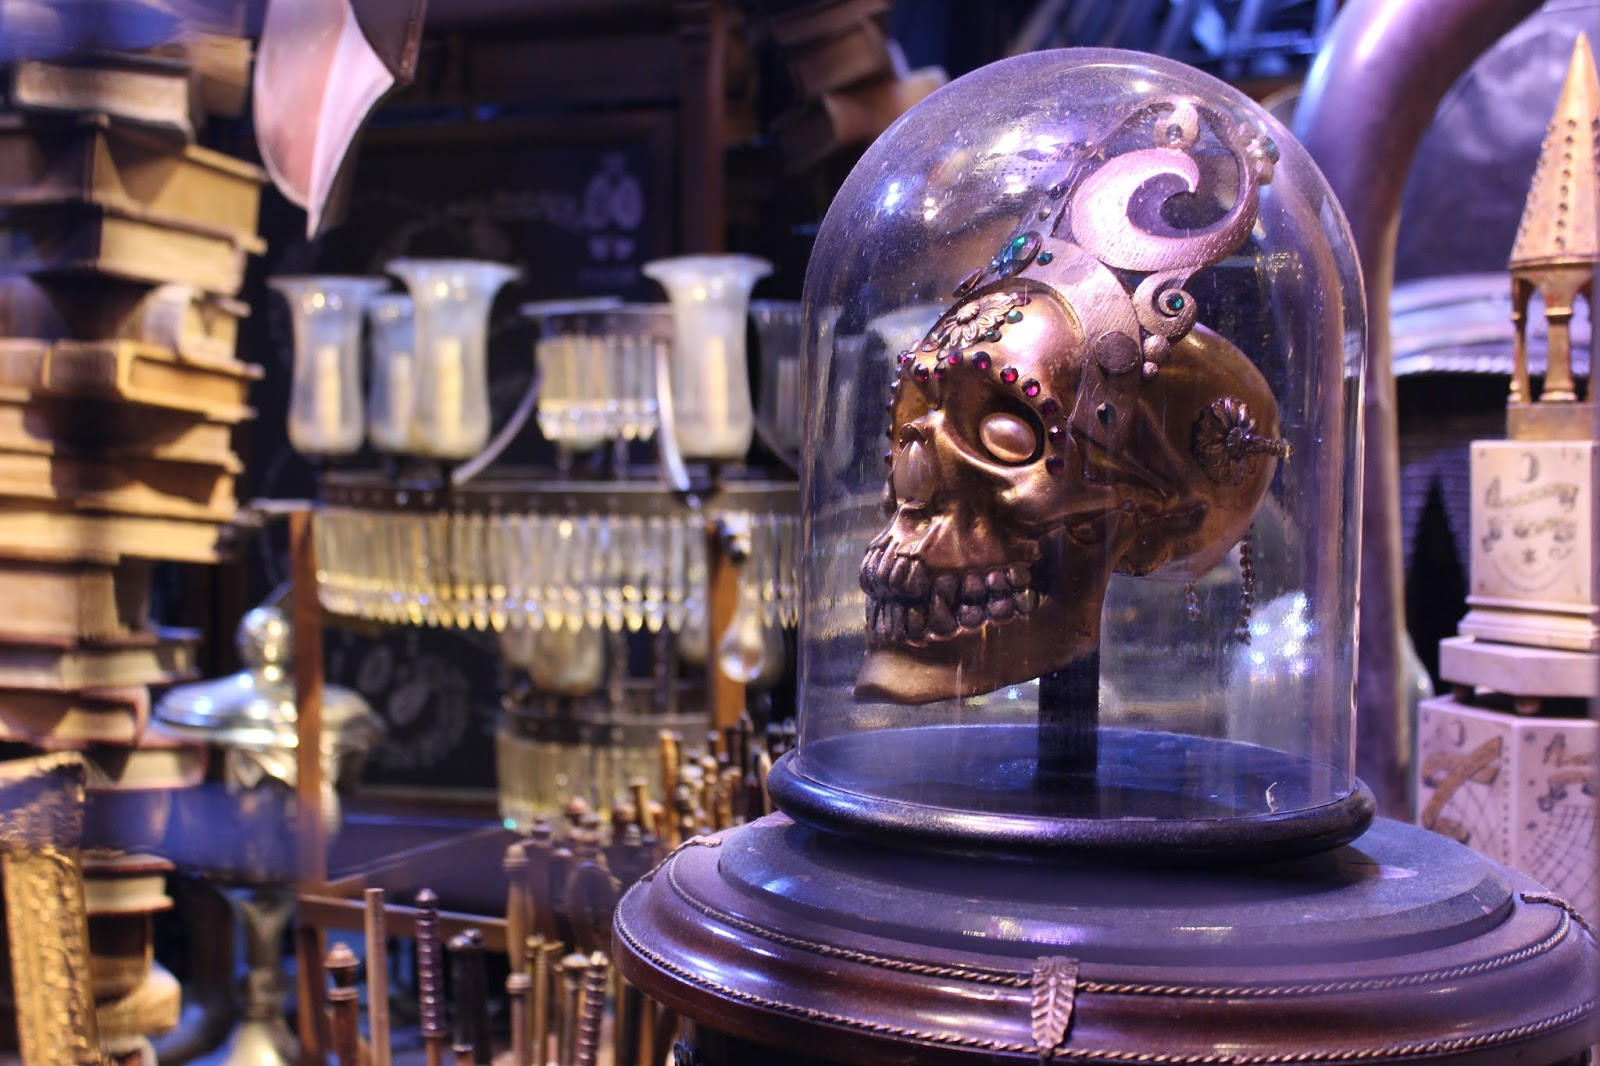 Harry Potter studio tour london potions classroom and skull